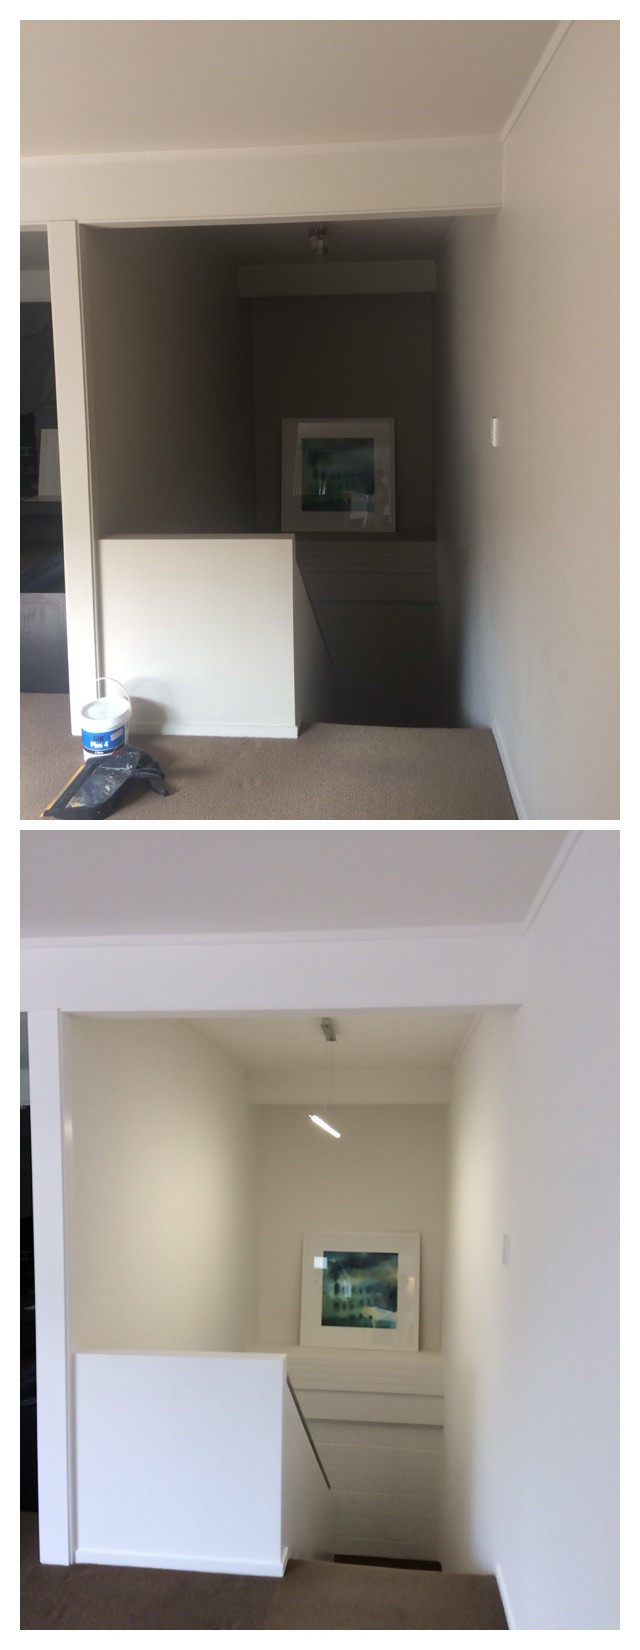 Interior & Exterior House Painters/Painting Campbells Bay,North Shore,Auckland